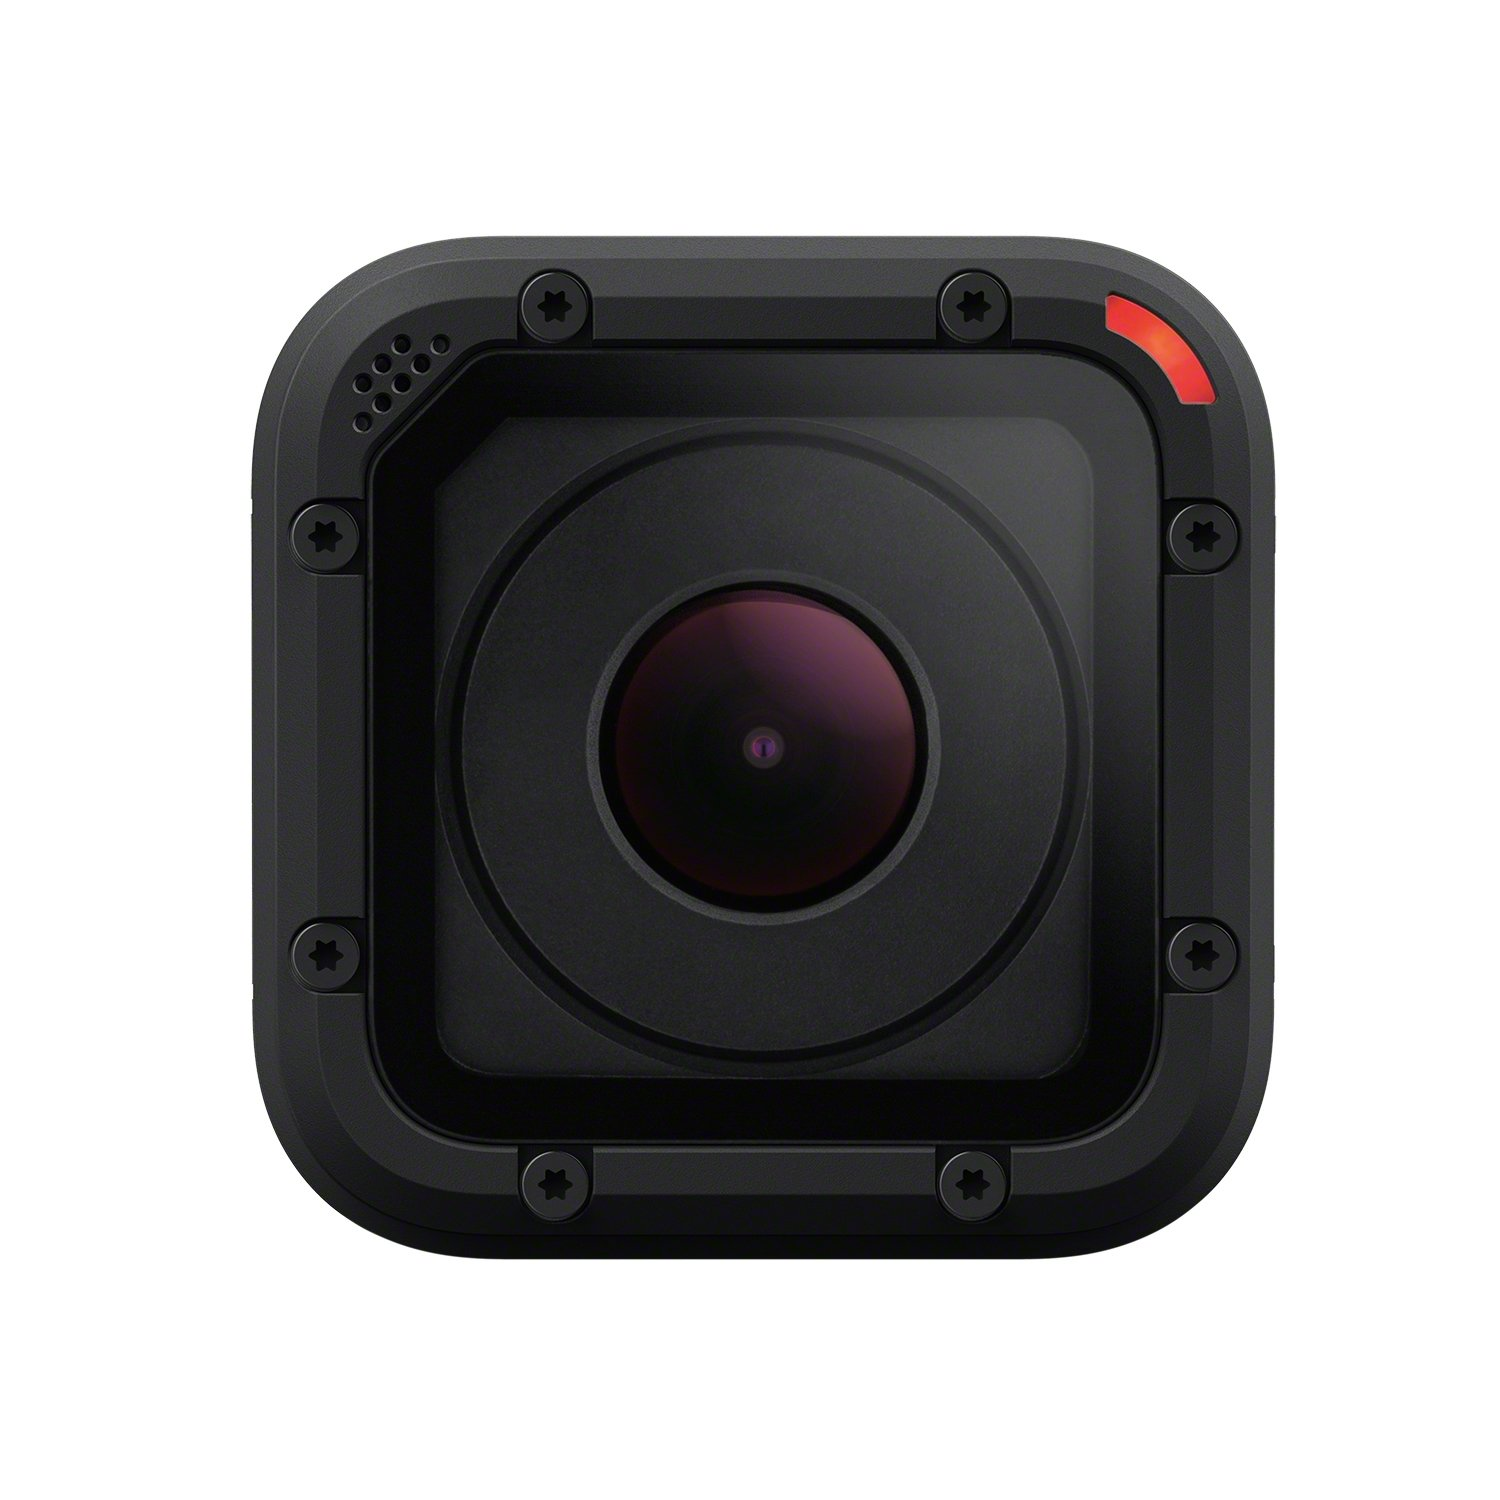 Gopro Hero Session Camera Black Photo Hd Action